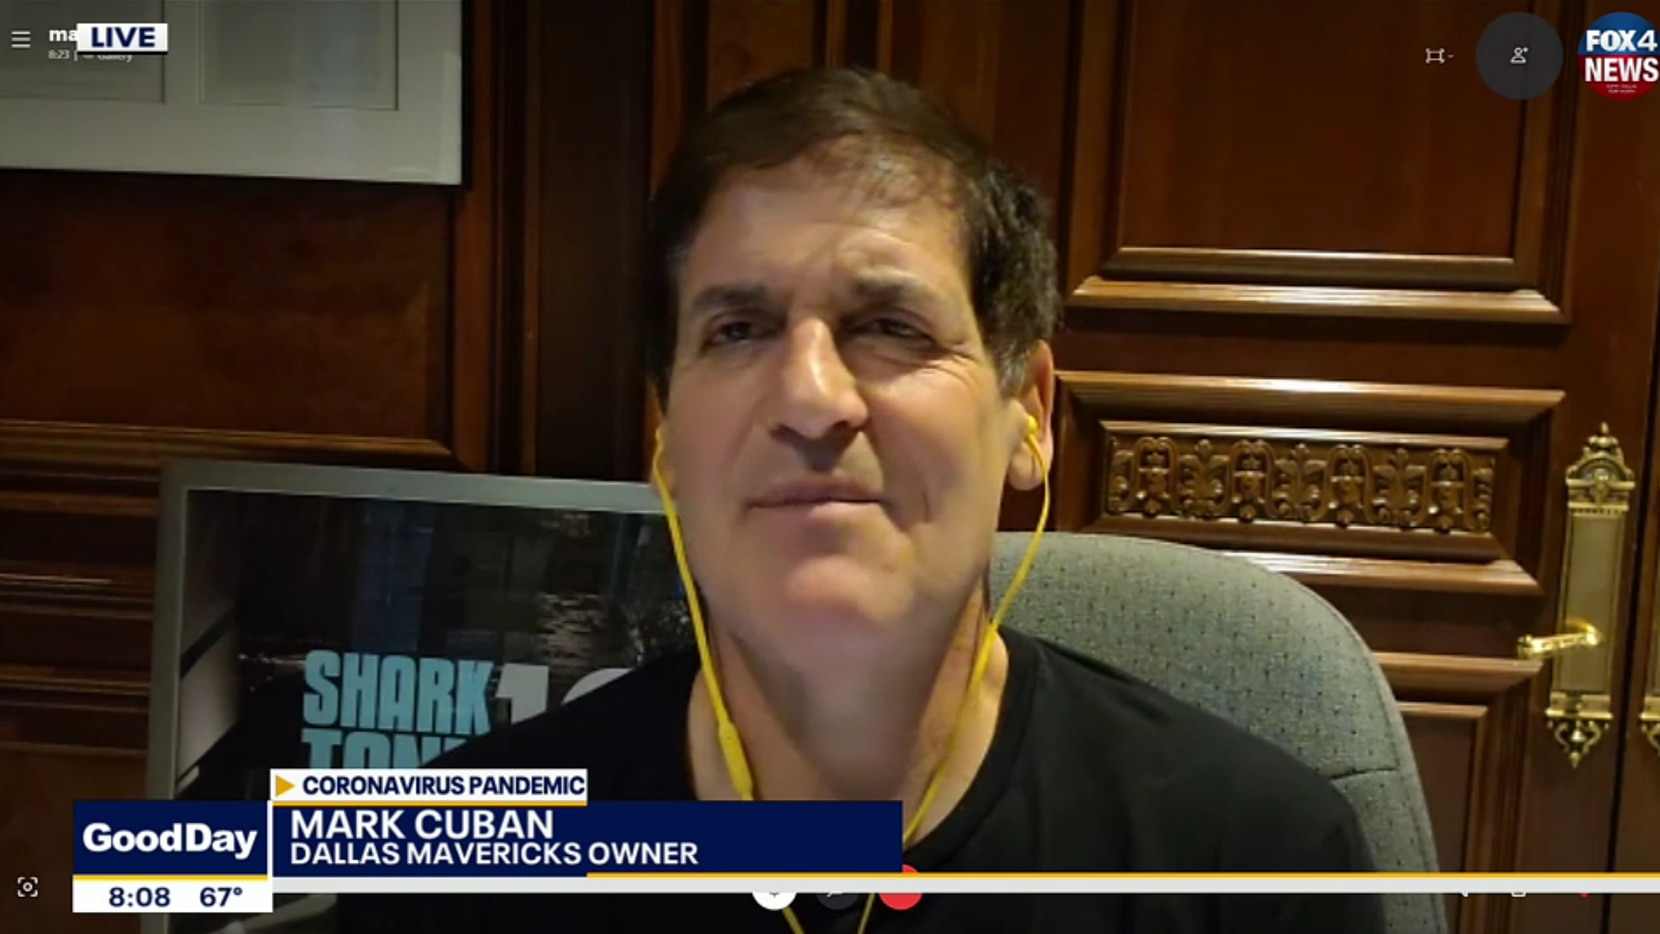 Mark Cuban joined Fox 4's Good Day to give his perspective on the reopening of the Texas economy during the coronavirus pandemic.